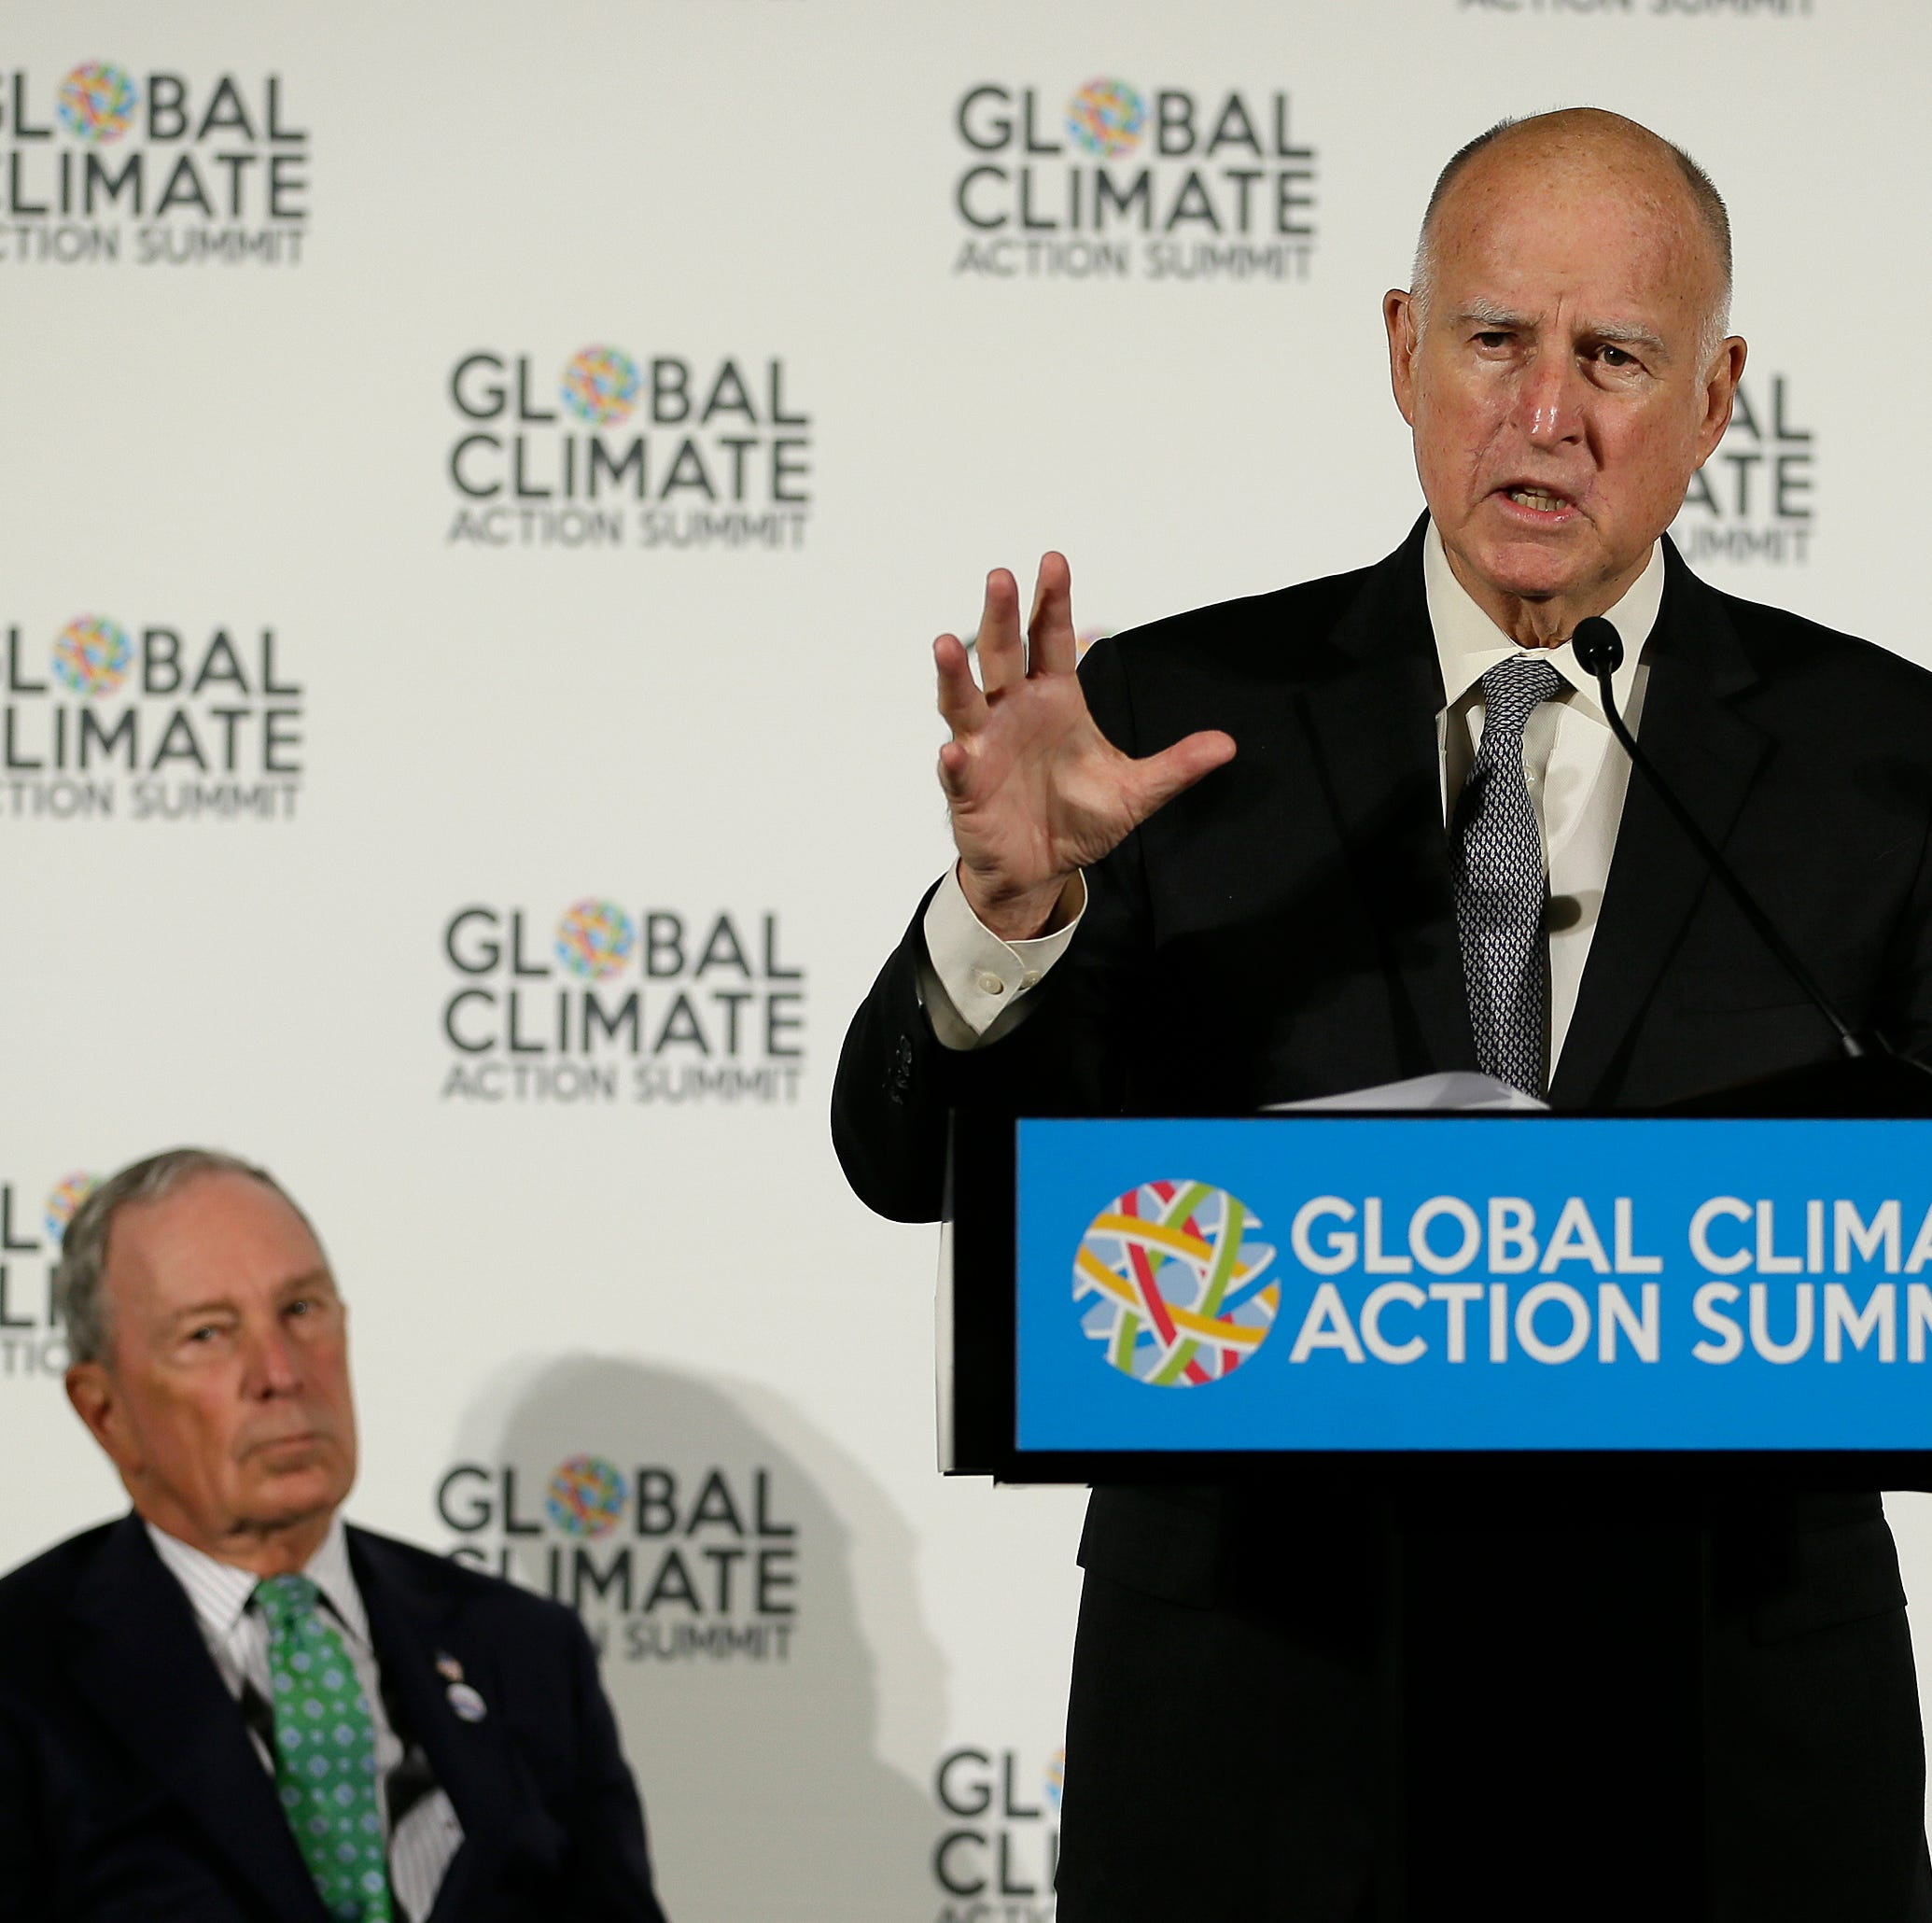 Global summit rebukes Trump, cheers on work to aid climate